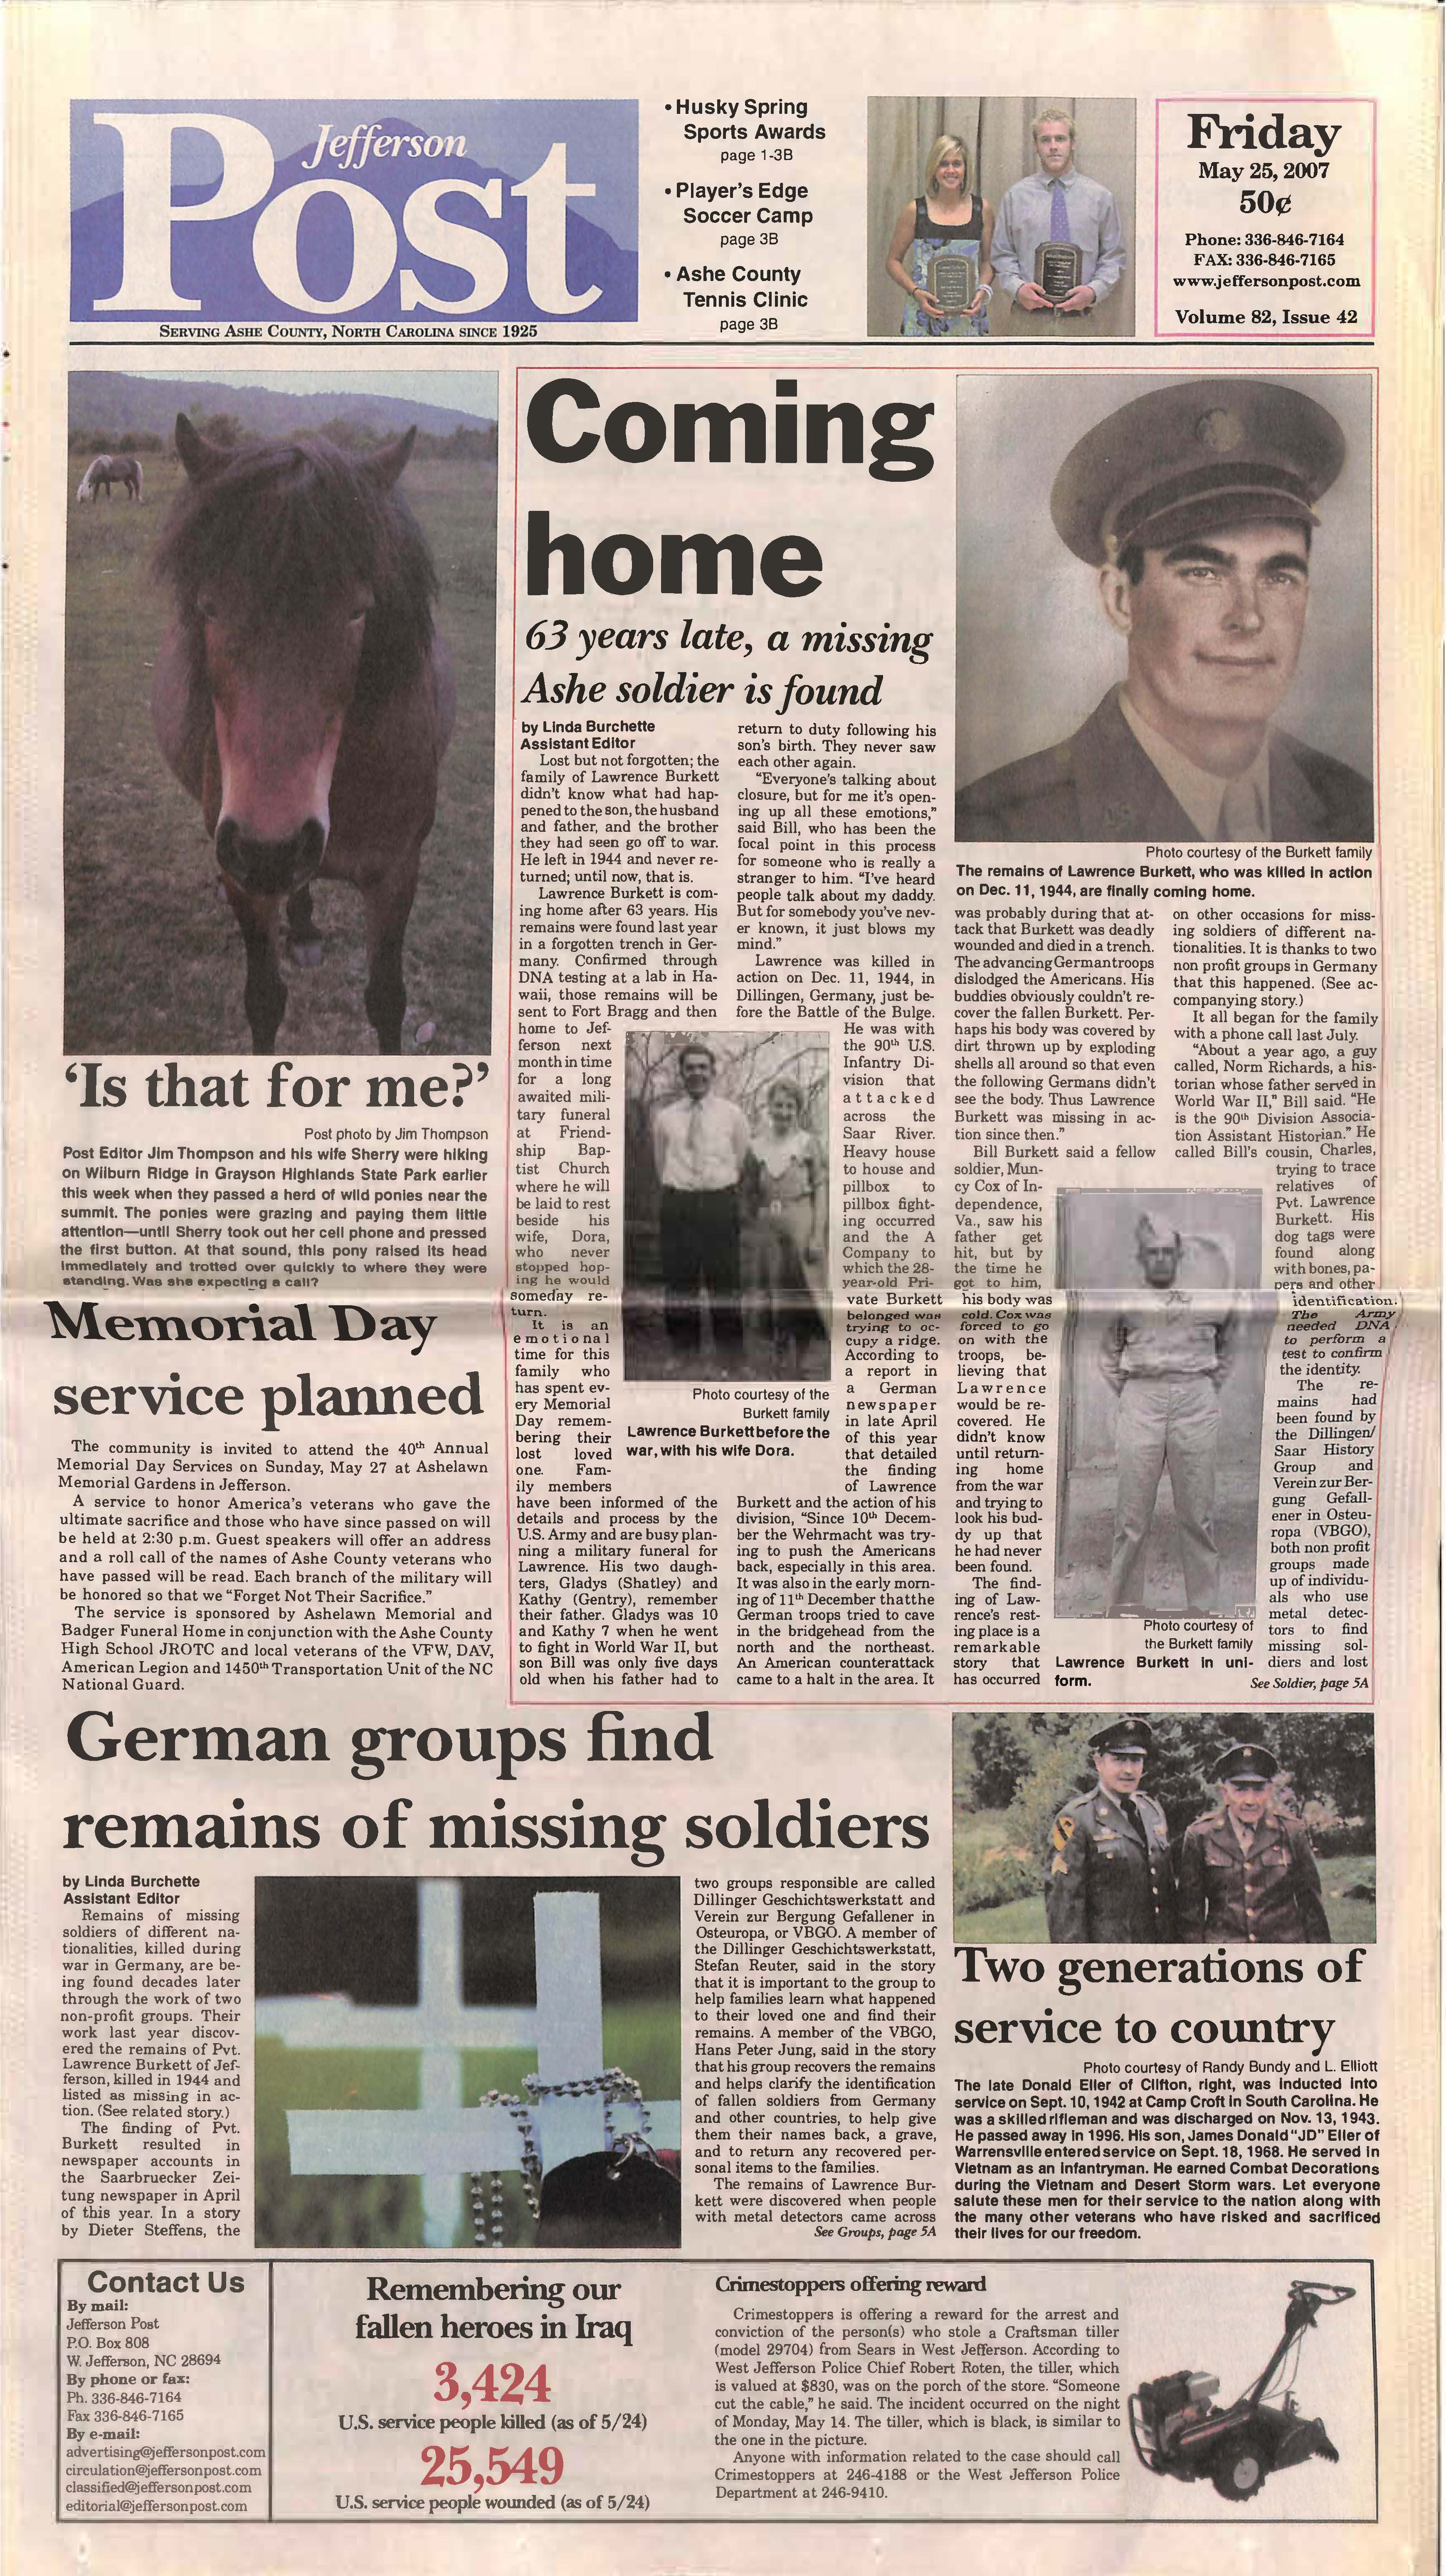 color image of front of Jefferson Post featuring story about Lawrence Burkett